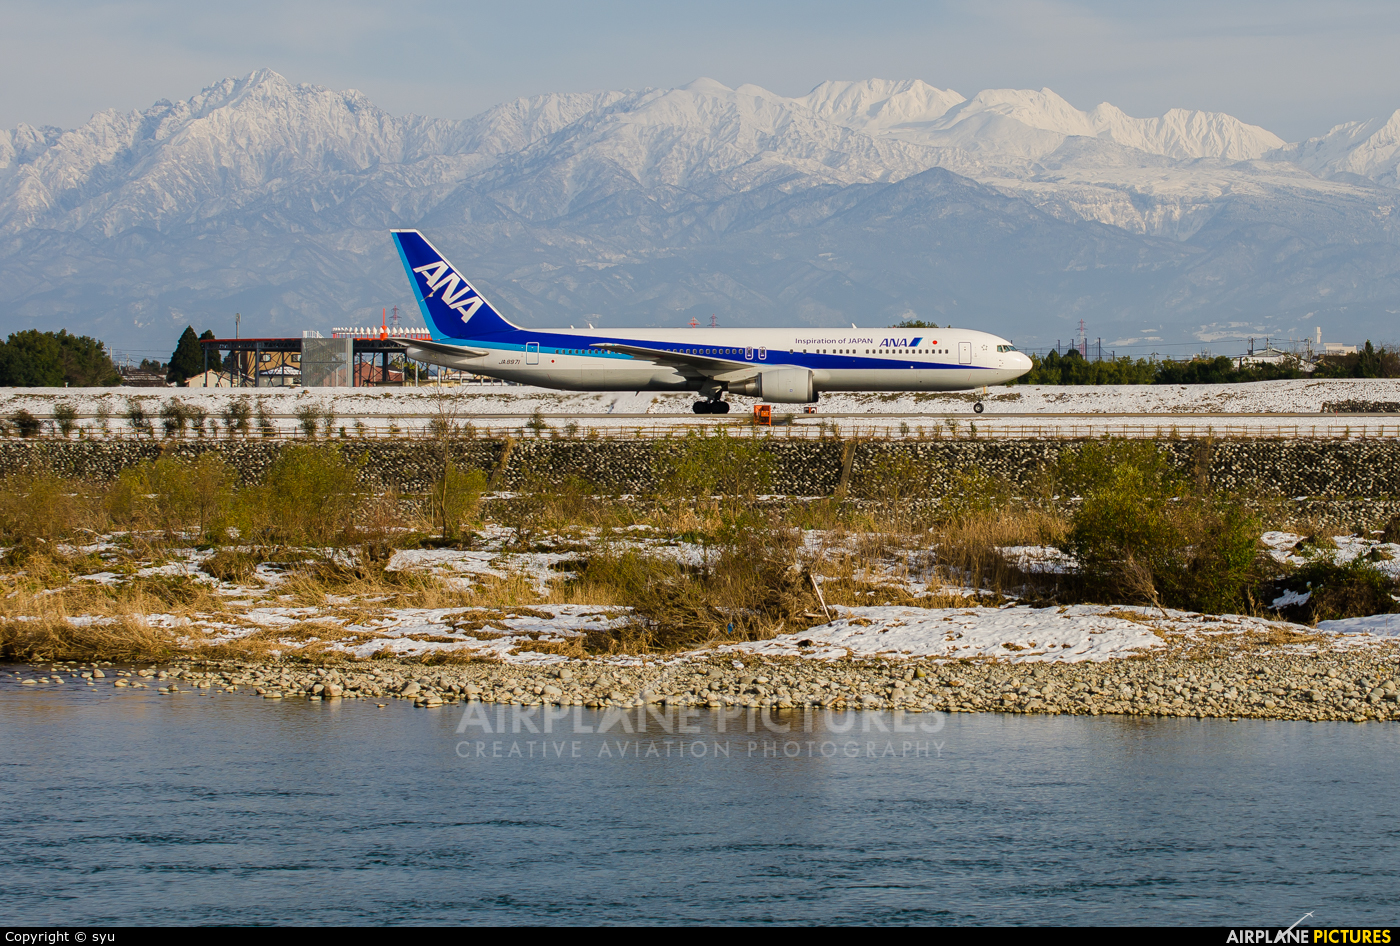 ANA - All Nippon Airways JA8971 aircraft at Toyama